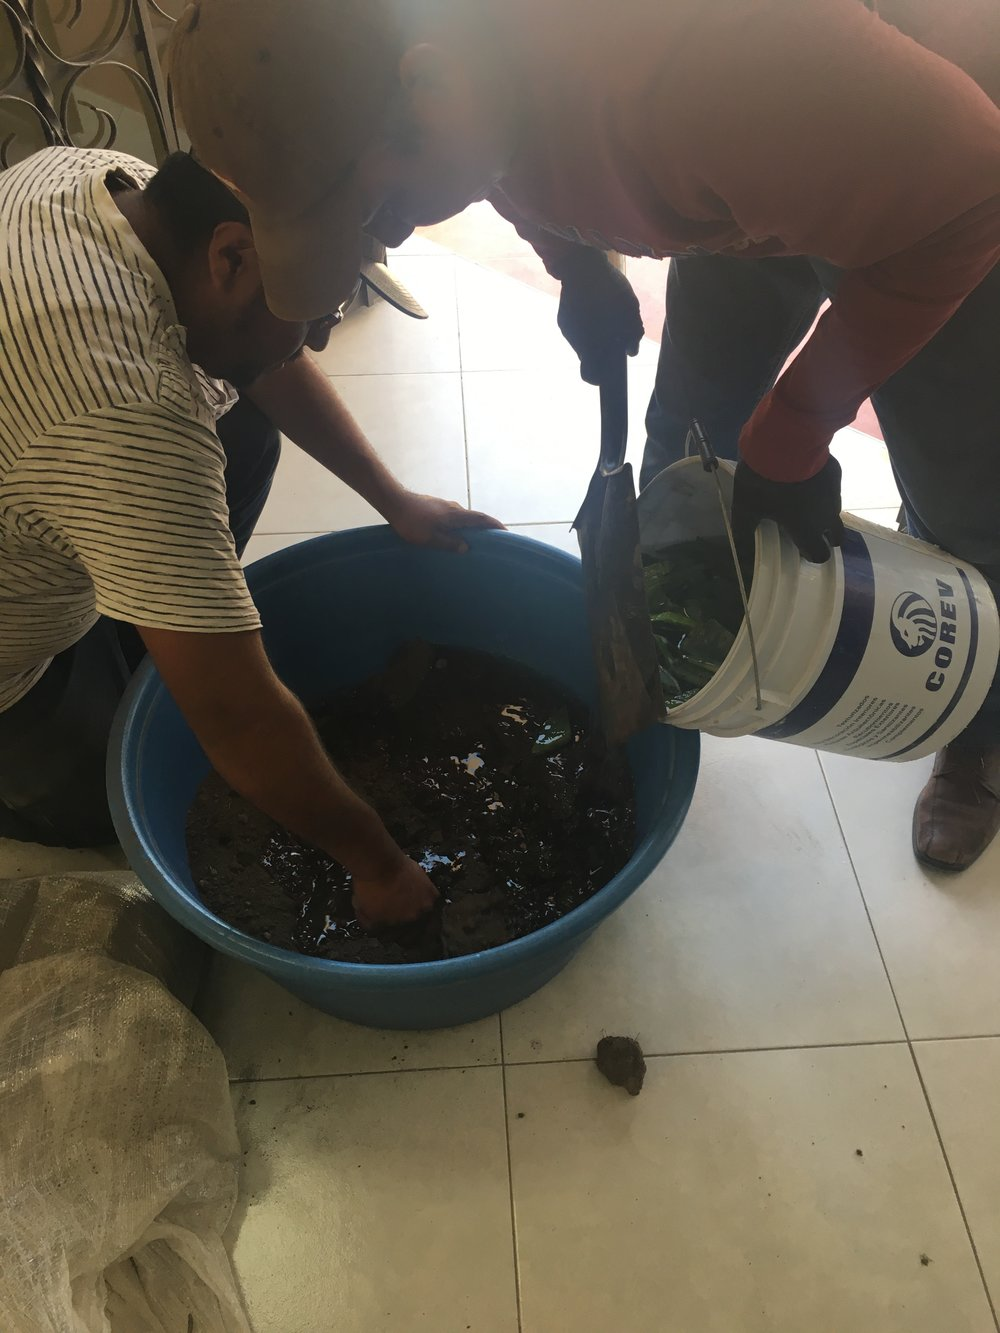 Joel and Isidro mix dirt with water and cactus sap. This mimics a technique that was used in the past and makes a durable (concrete-like) construction material.